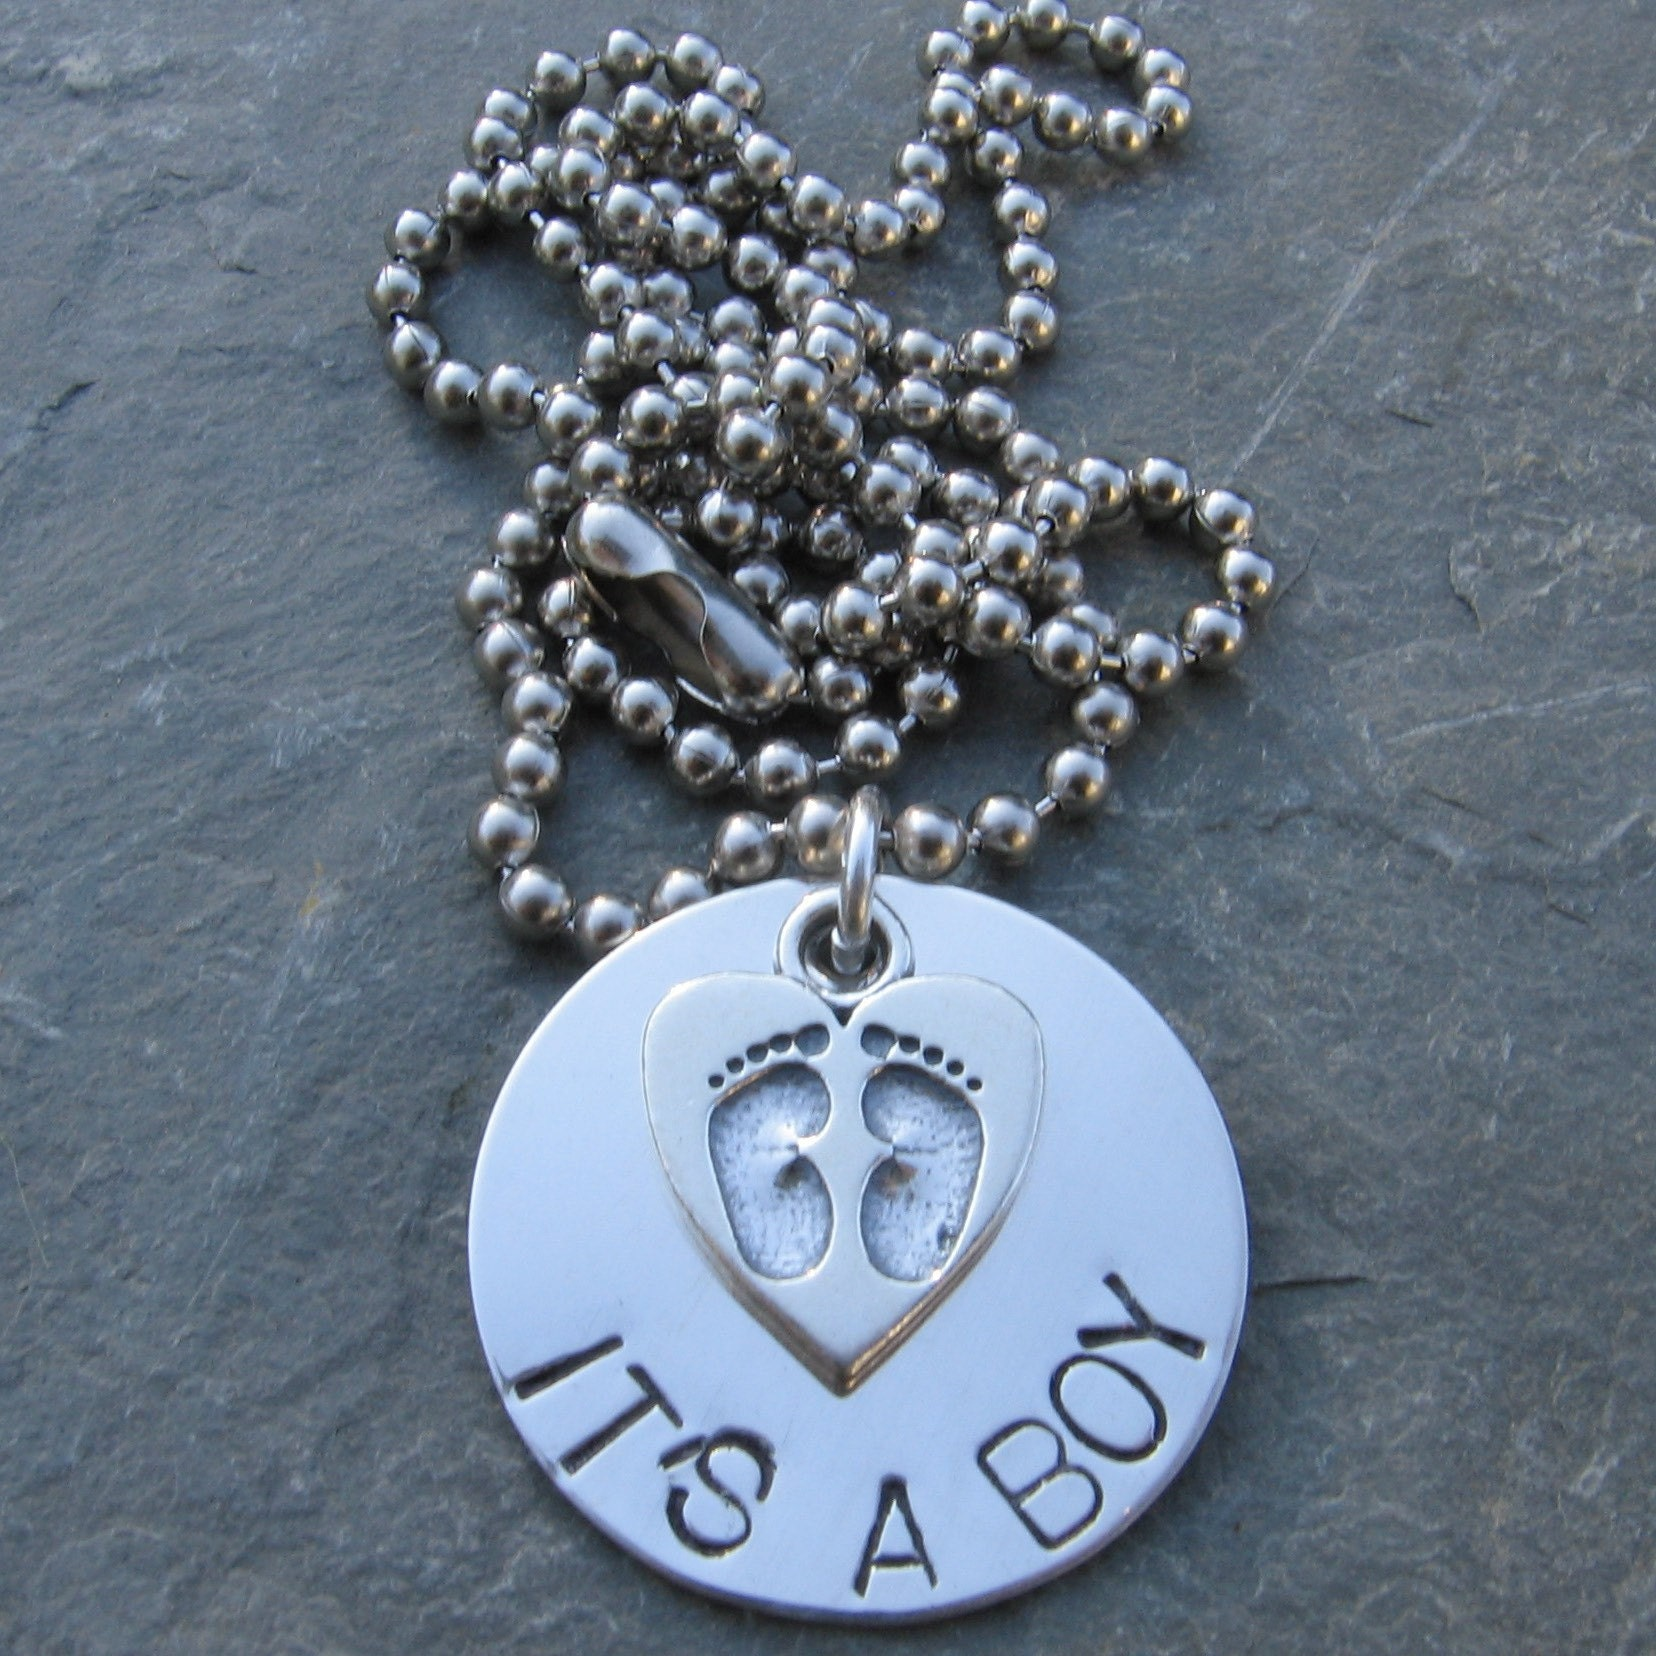 It's a boy / girl necklace, sterling silver disc hand stamped and personalized with heart baby feet charm